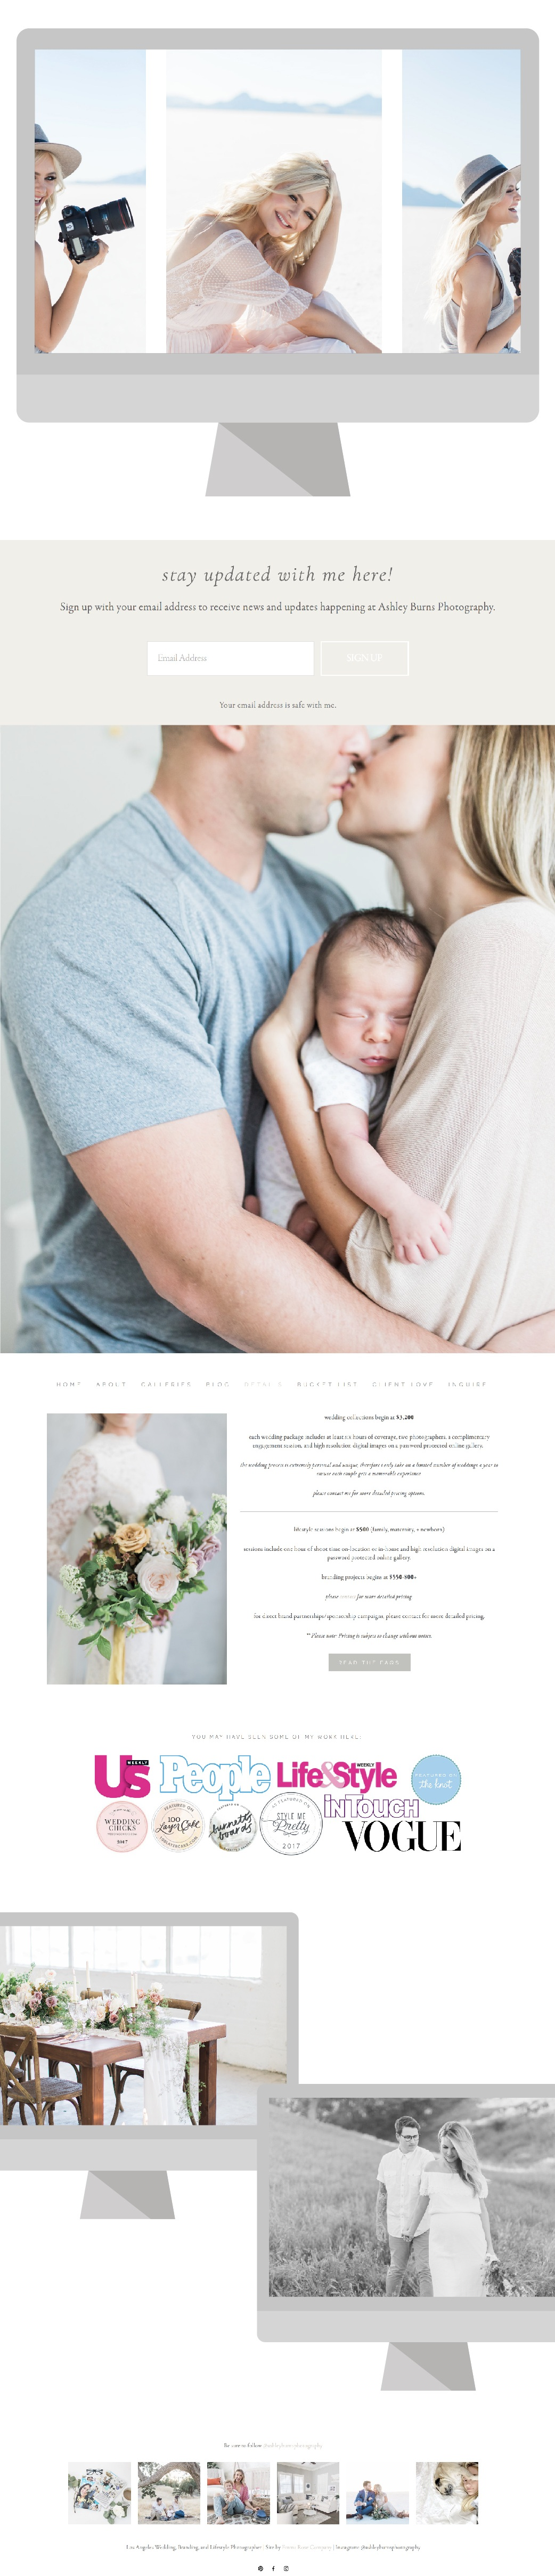 Ashley Burns Photography modern squarespace website design and branding project with Emma Rose Company, a designer for photographers | Geometric design inspiration neutral tones